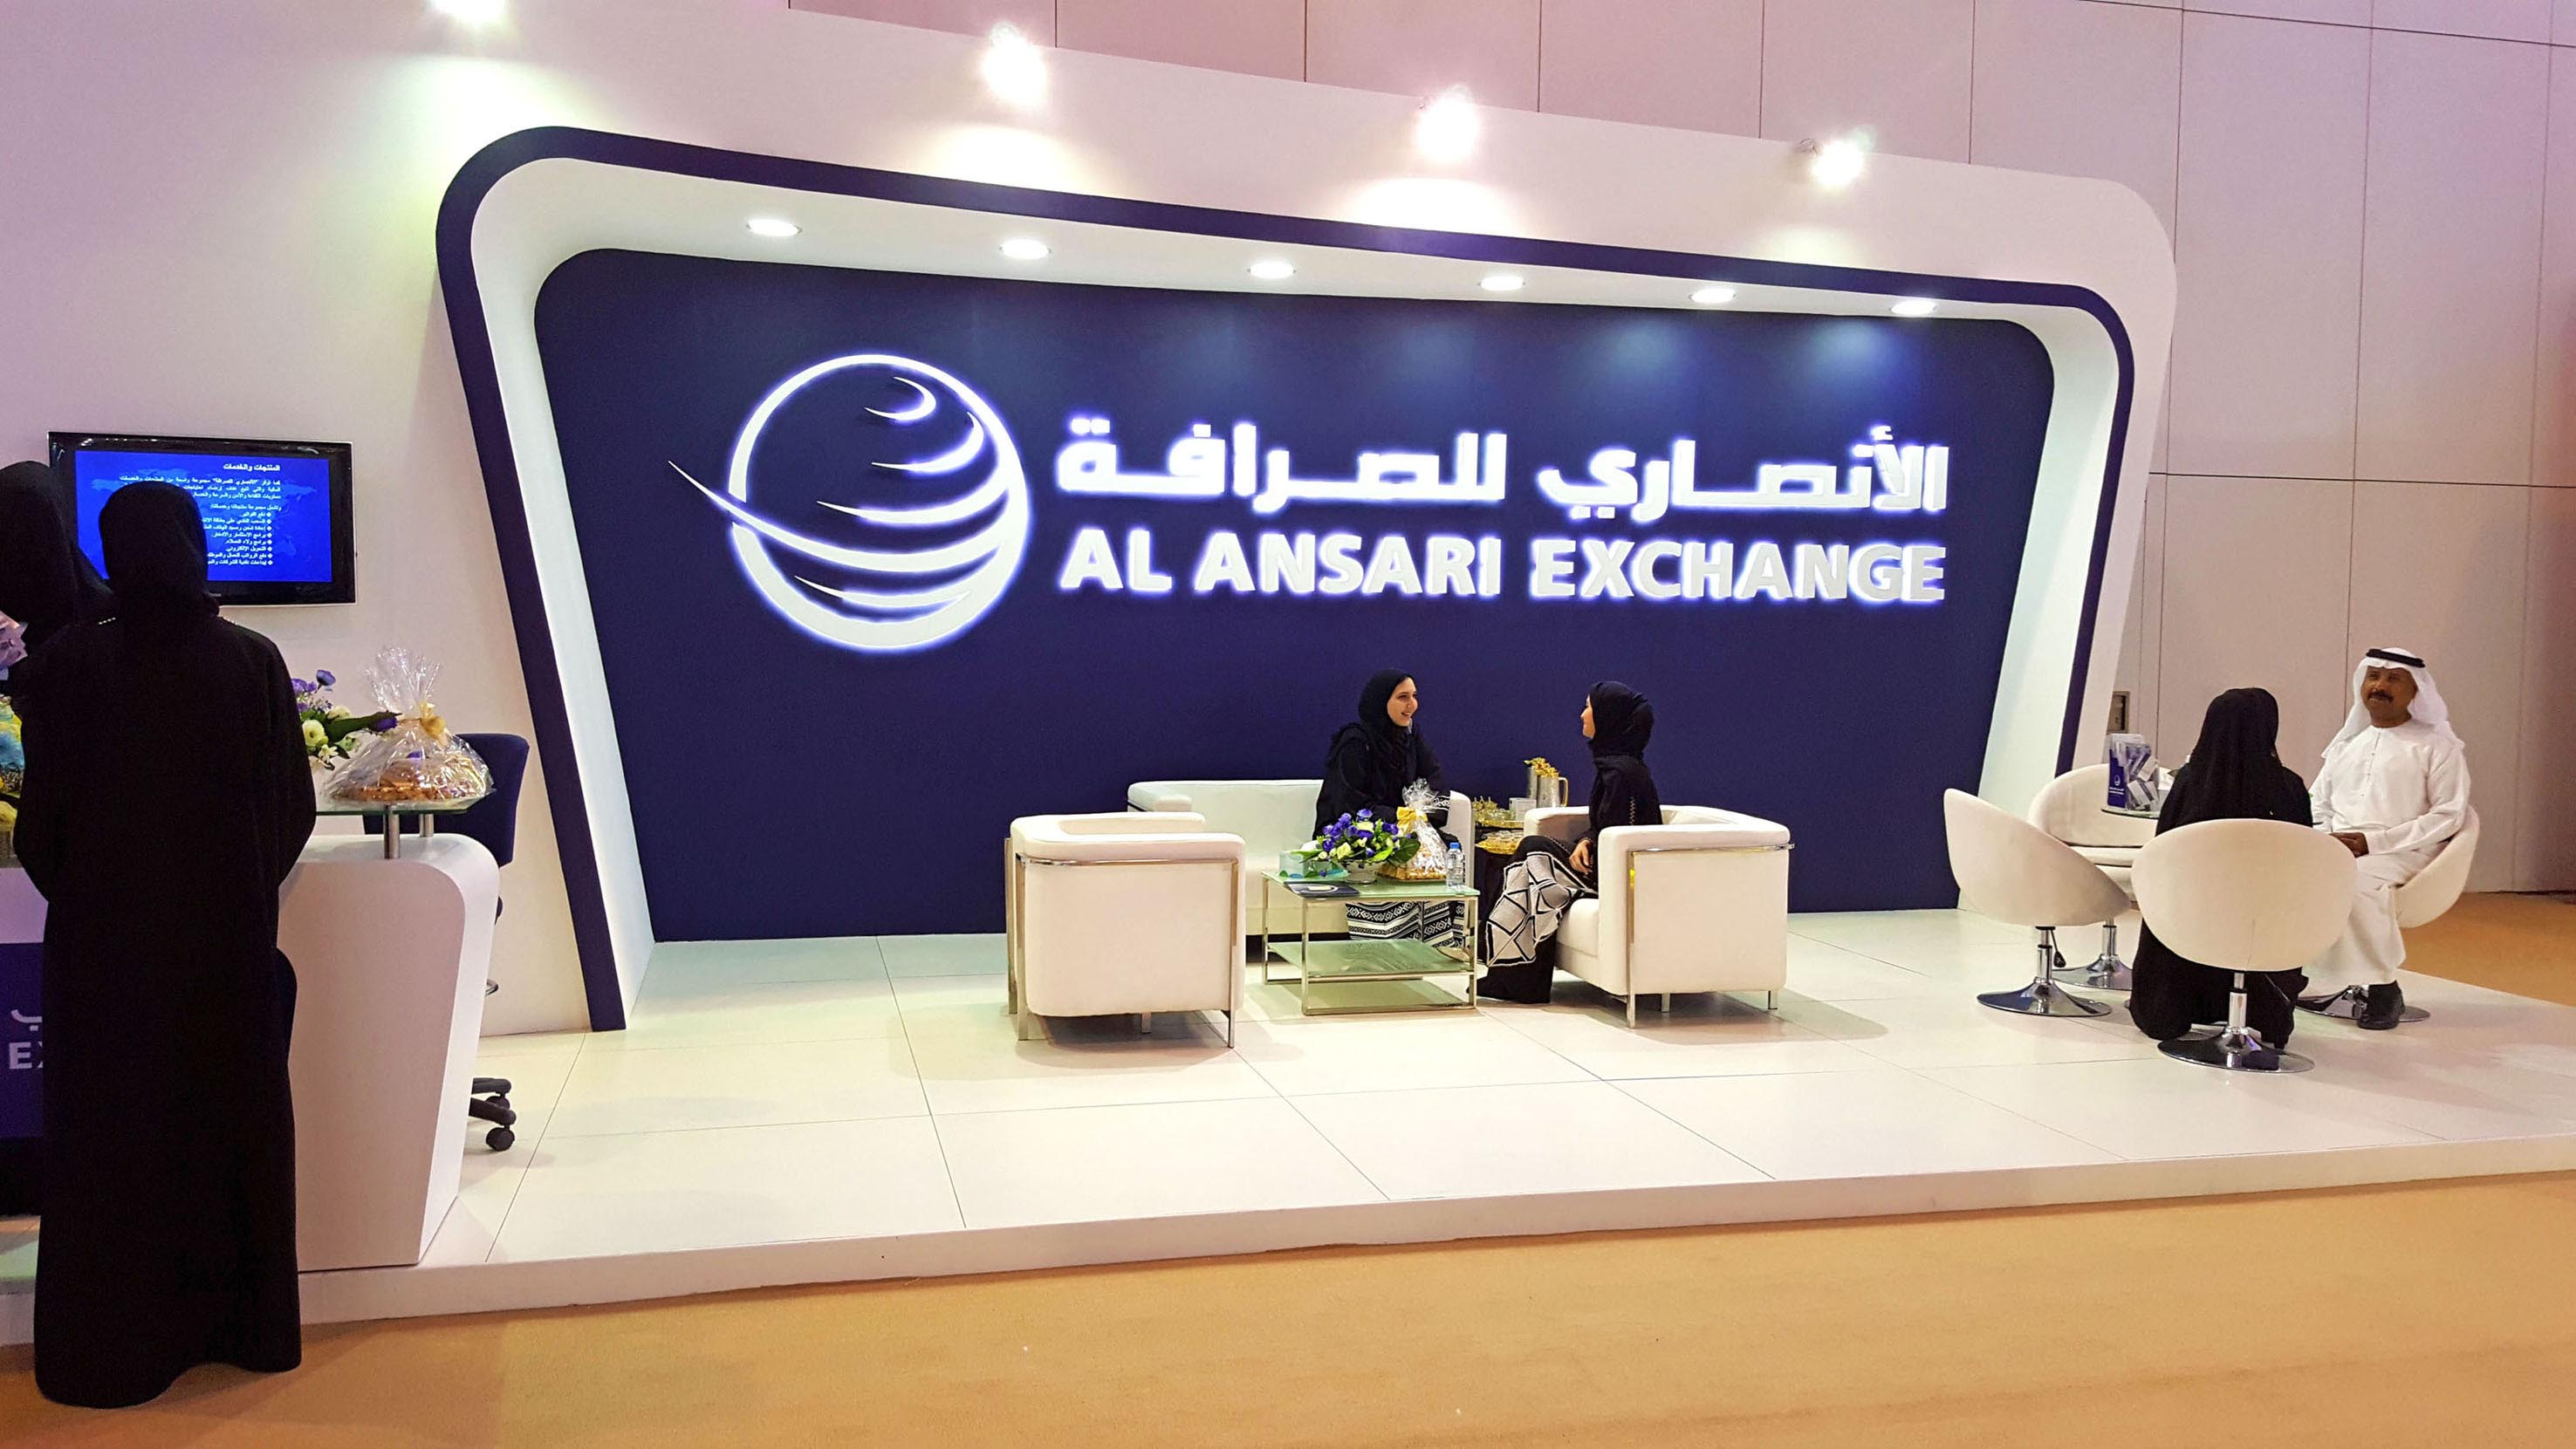 Al Ansari Exchange affirms its commitment to Emiratization during participation in National Career Exhibition 2016